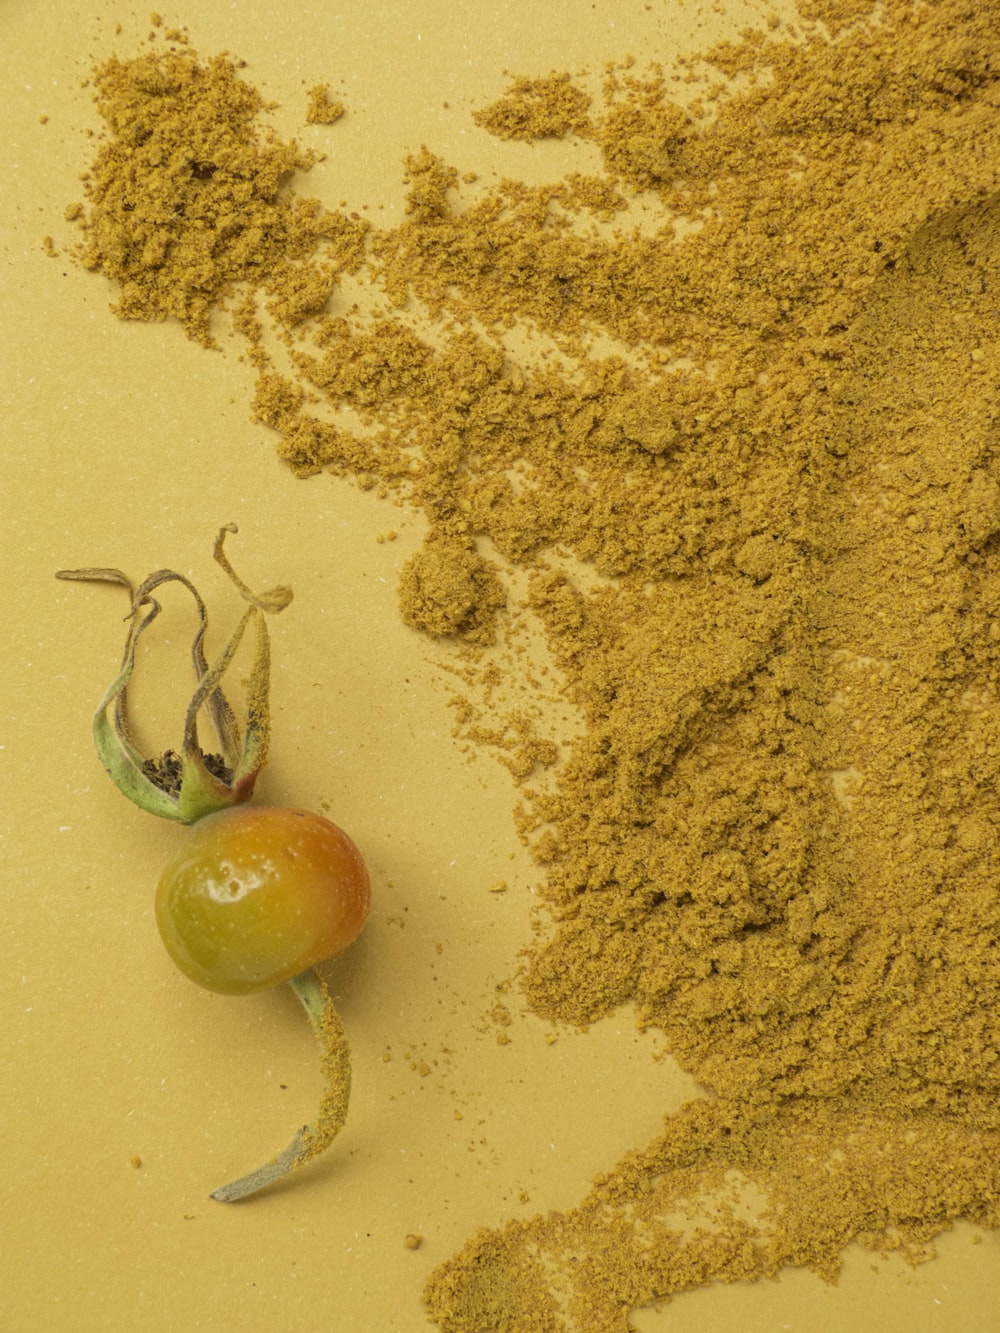 orange tomato on brown sand